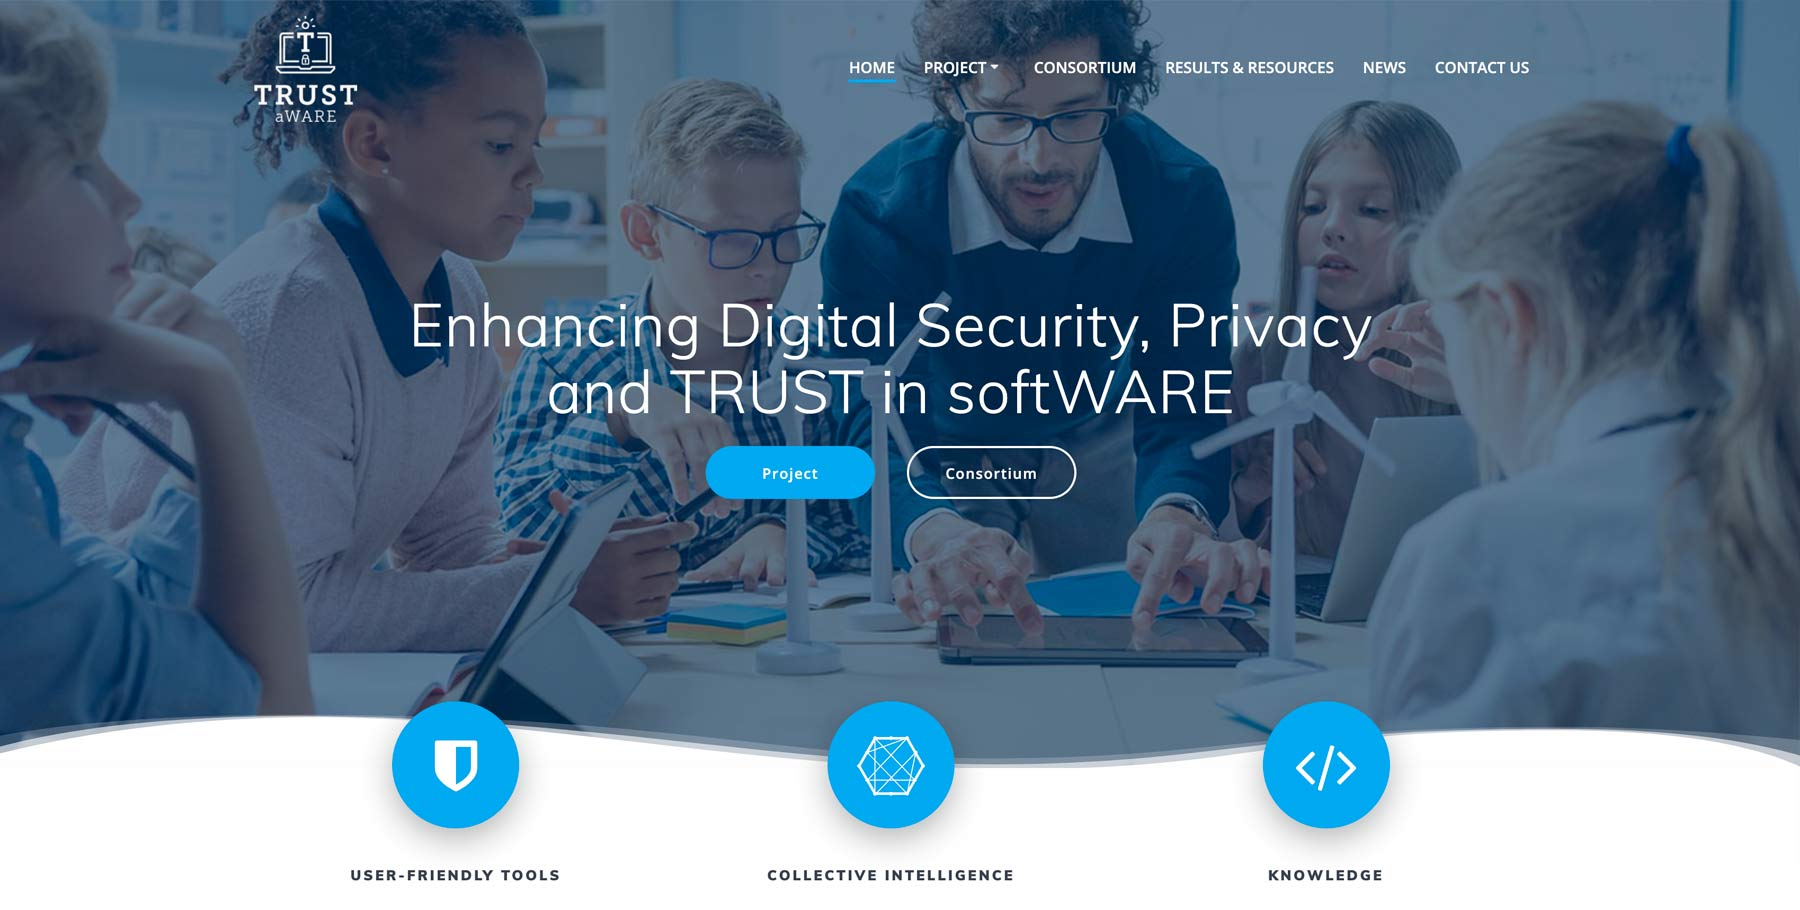 Do you want to get involved in the co-creation of tools to respond to security and privacy threats? Follow the TRUST aWARE proje